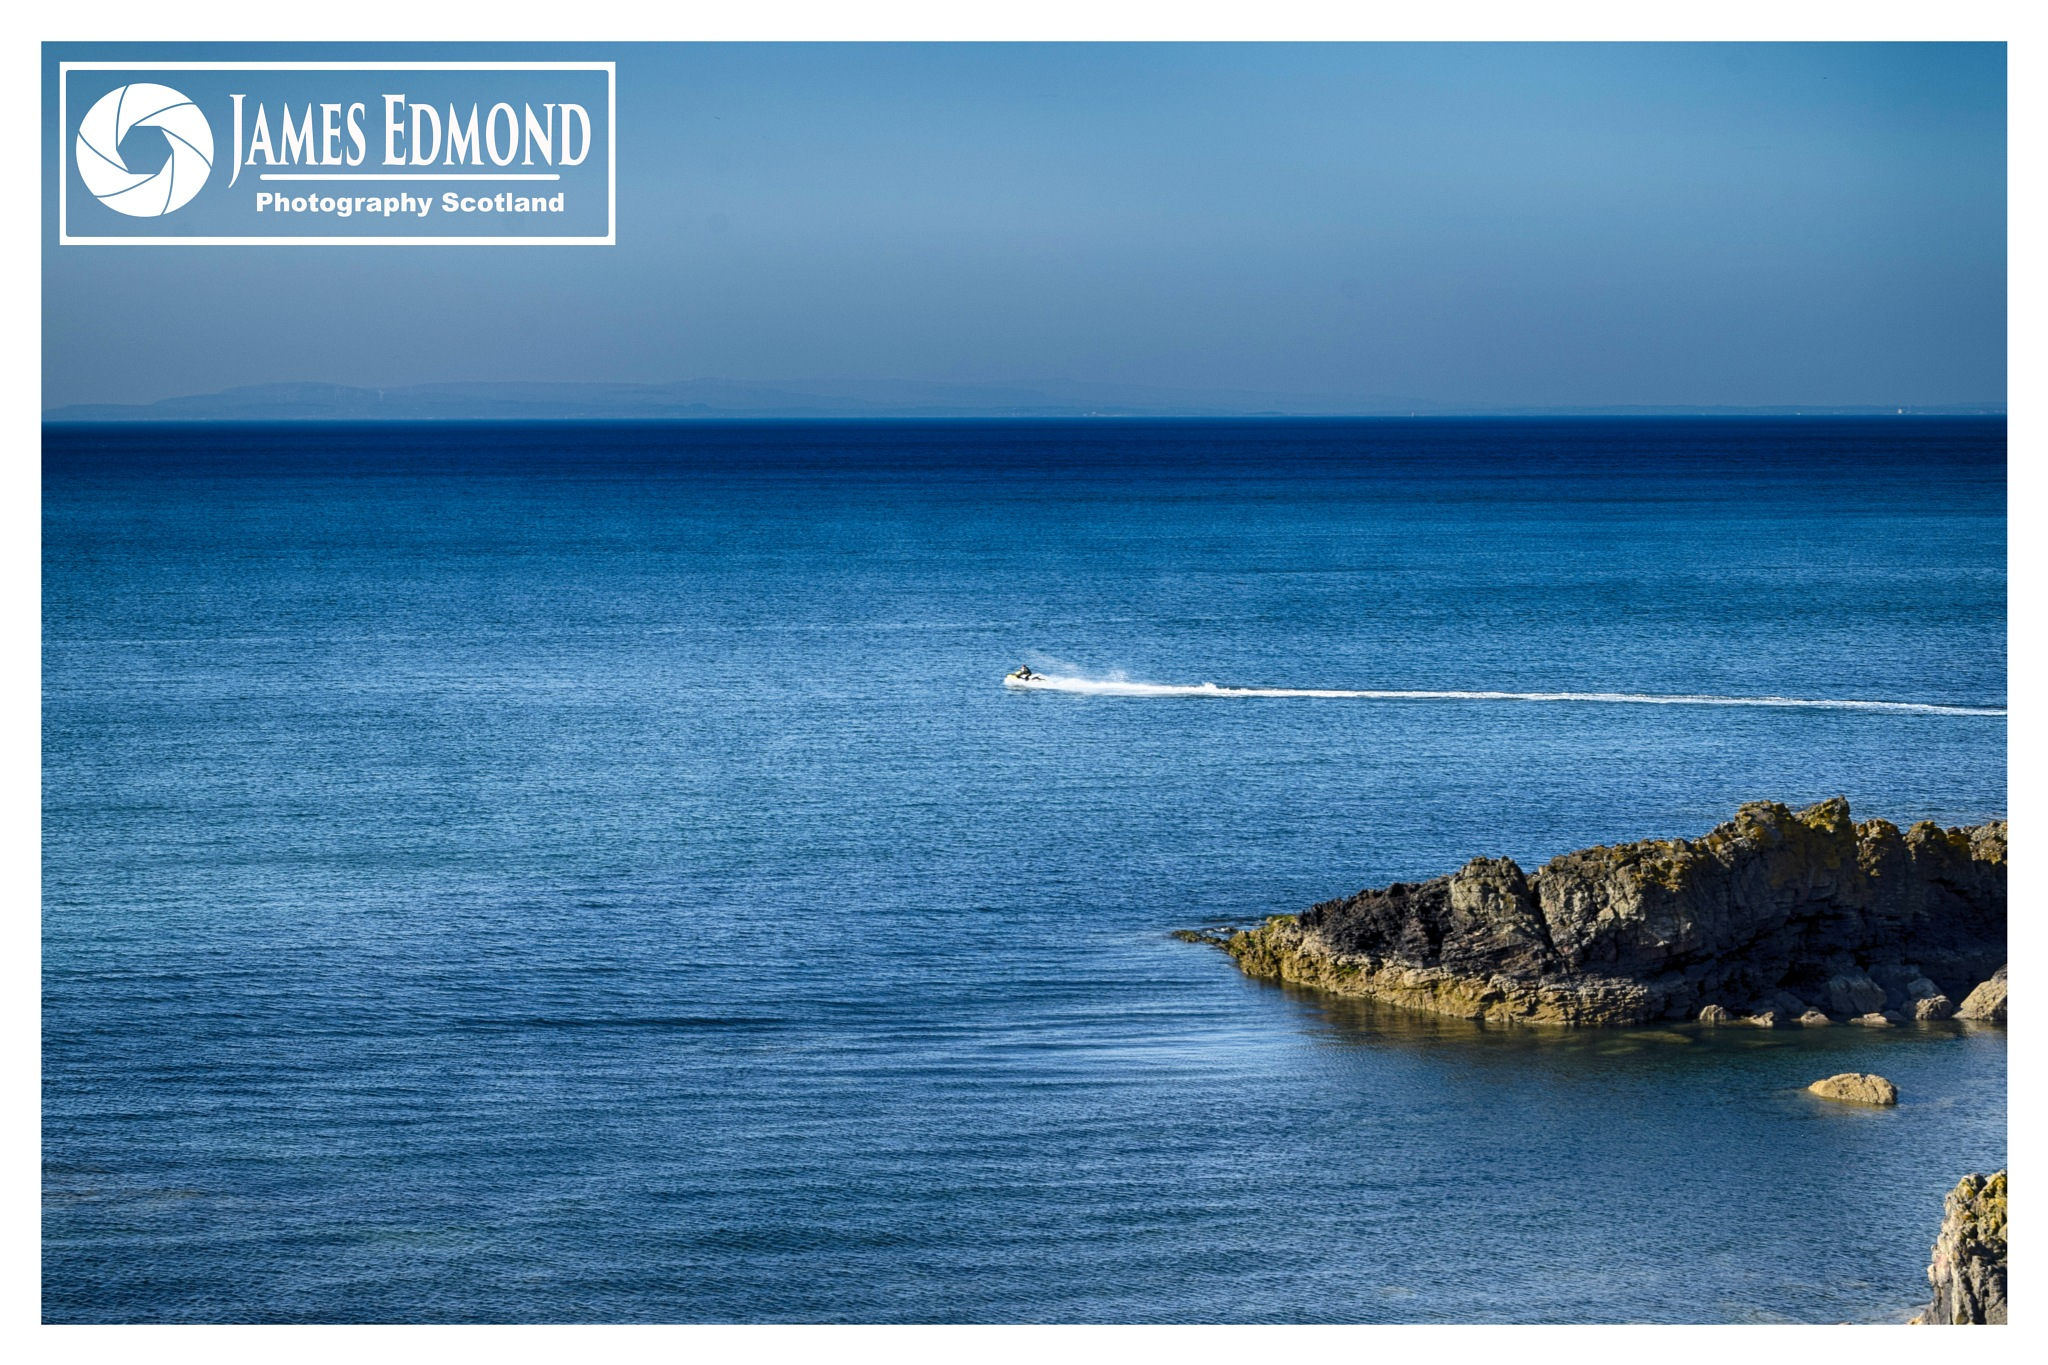 Water Sports by James Edmond Photography